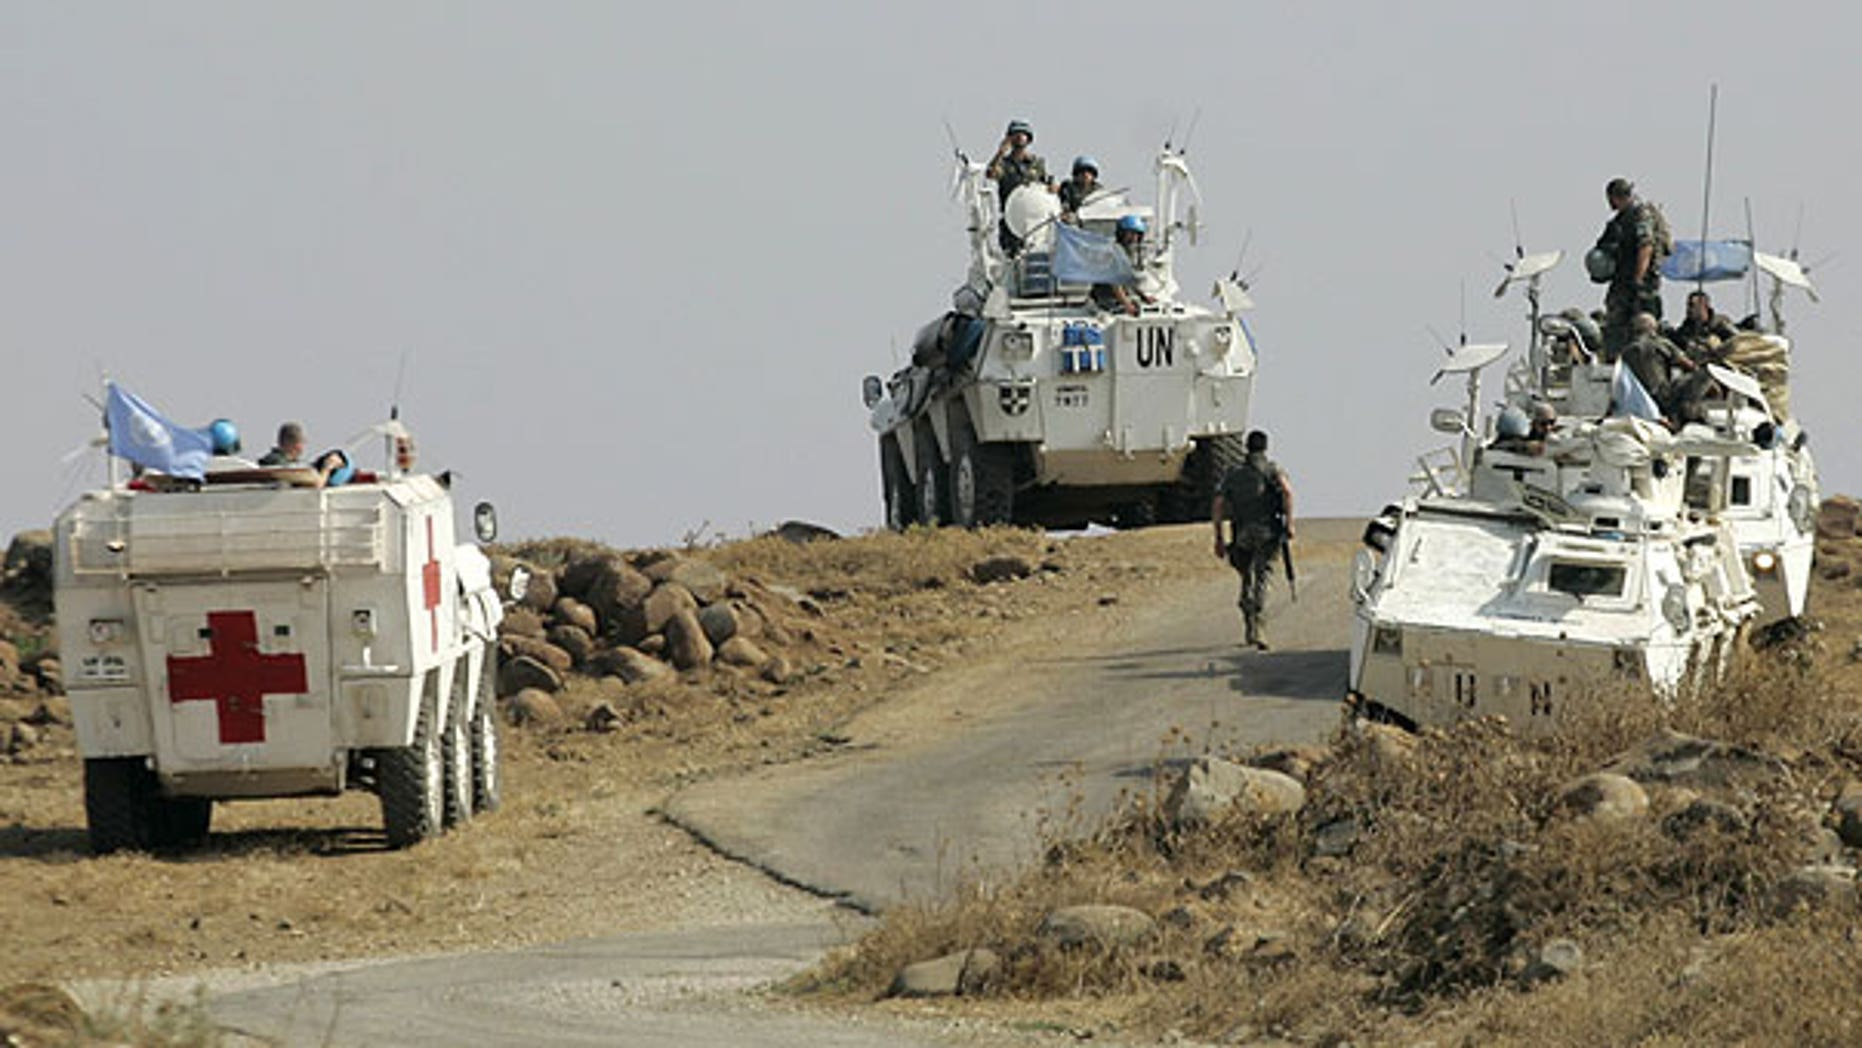 Aug. 1: Spanish United Nations peacekeepers atop armored vehicles patrol the border in the southeastern Wazzani River area, Lebanon.